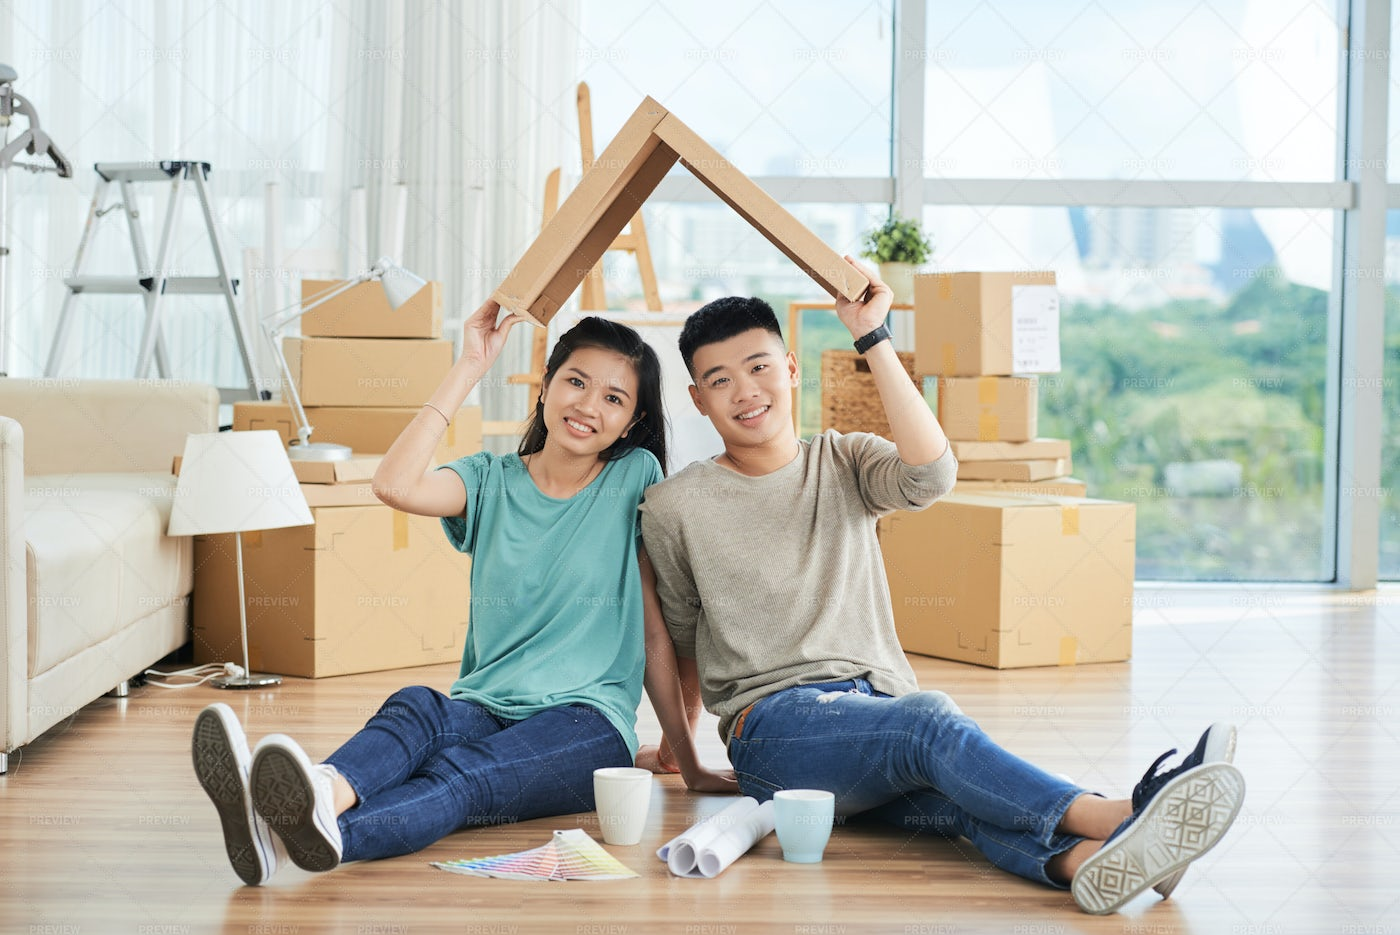 Couple Playing With Cardboard On...: Stock Photos